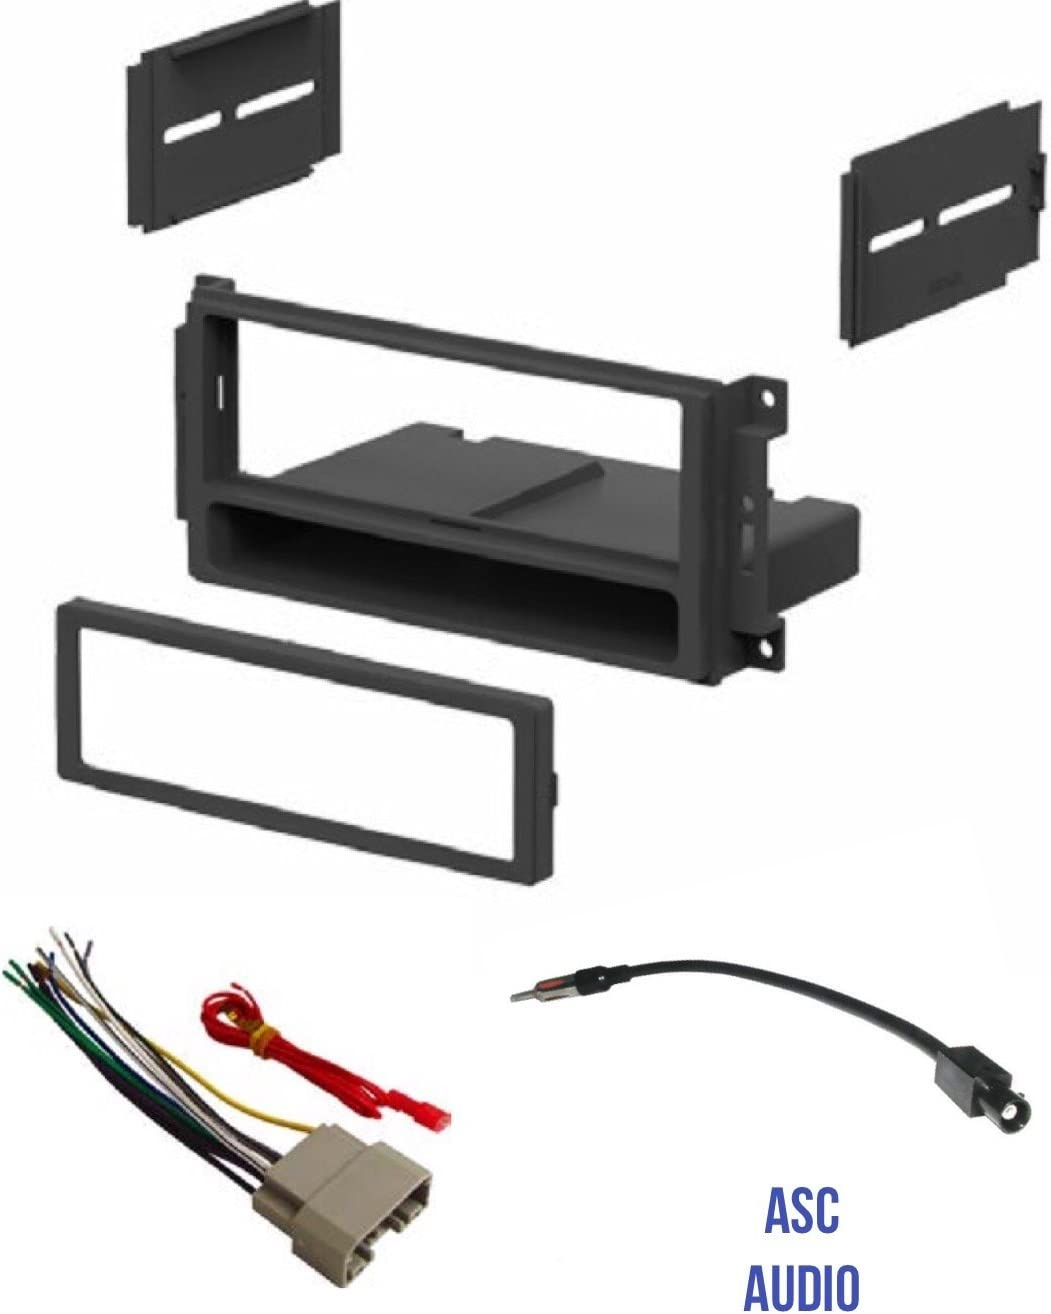 [TBQL_4184]  Amazon.com: ASC Audio Car Stereo Radio Install Dash Kit, Wire Harness, and  Antenna Adapter to Add a Single Din Radio for some 2007-2016 Chrysler Dodge  Jeep- Important: Read Compatible Vehicles /Restrictions Below: | 2007 Dodge Radio Wiring Harness |  | Amazon.com